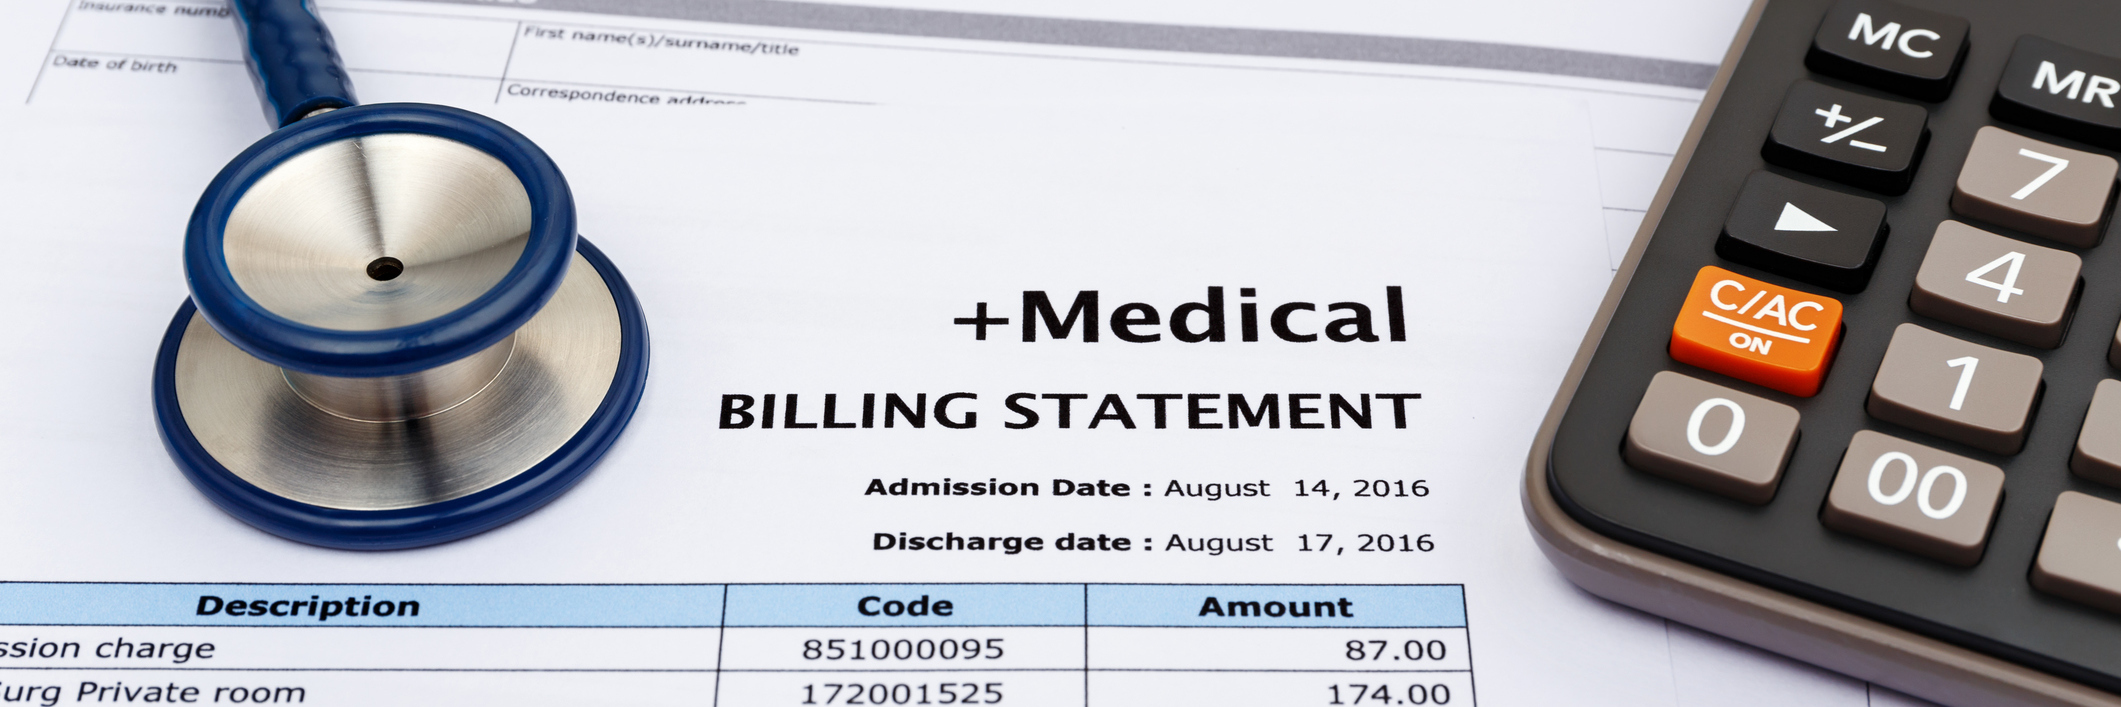 medical bill statement next to calculator and stethoscope